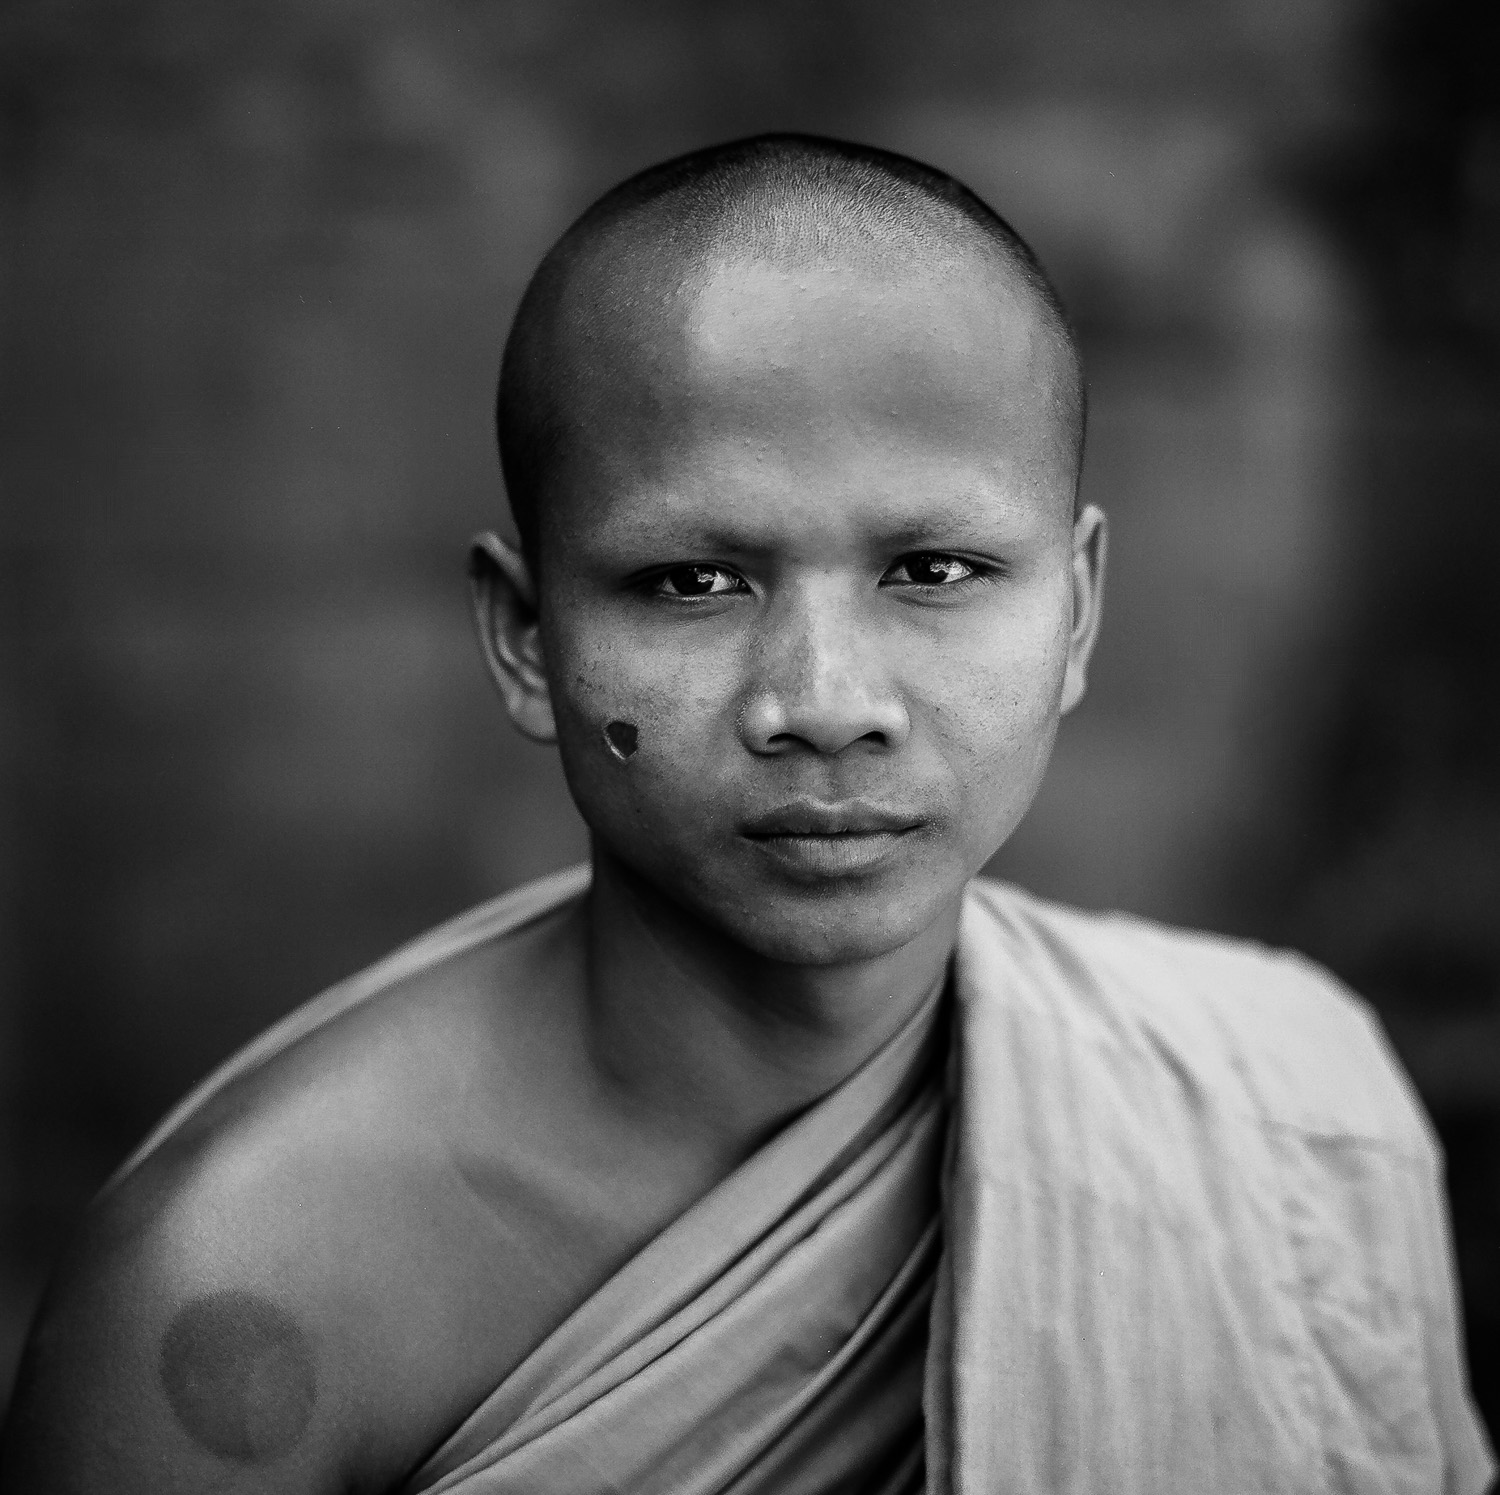 A formal portrait of a    monk    at the    Bayon    in the    Angkor Wat    complex near    Siem Reap, Cambodia   . The scare on his face is the result of being    tortured   , with a cigarette, by the    Khmer Rouge    when he was a child.